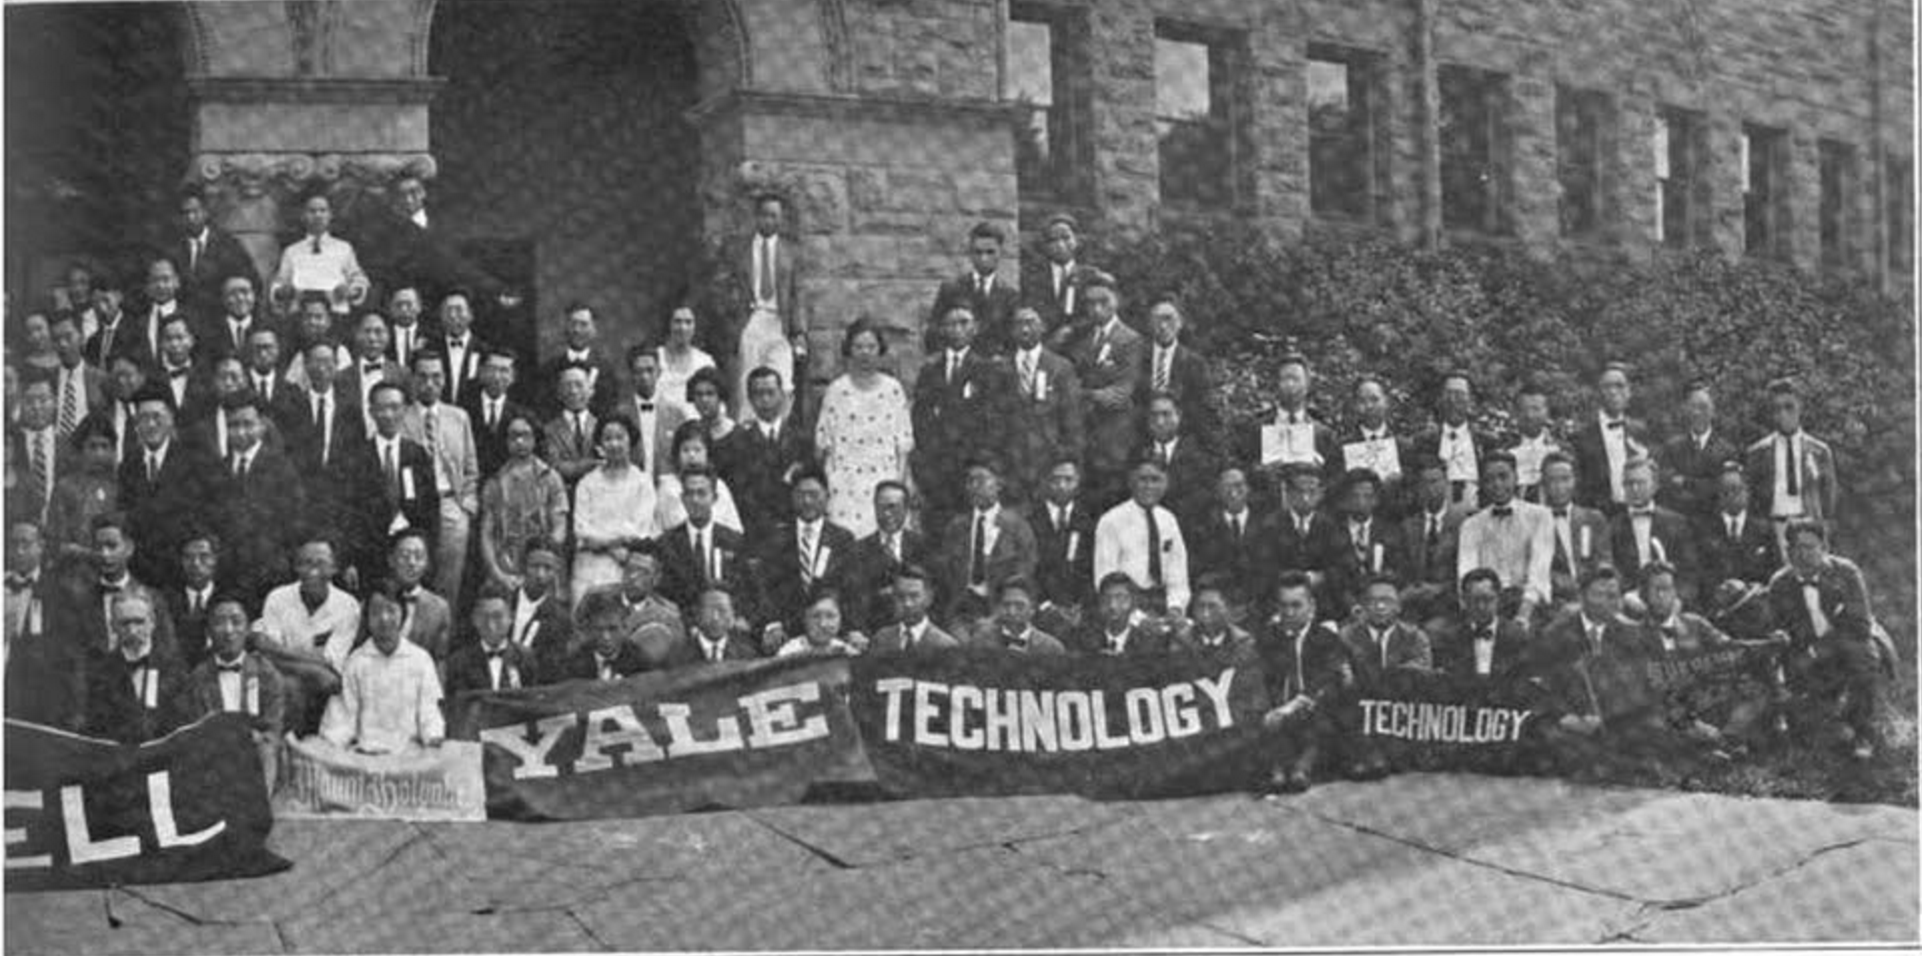 """The """" Technology """" contingent at the  18th Annual Conference   of the Chinese Students' Alliance, Eastern Section, Ithaca,New York, September 7-14, 1921. 19 MIT students were in attendance."""